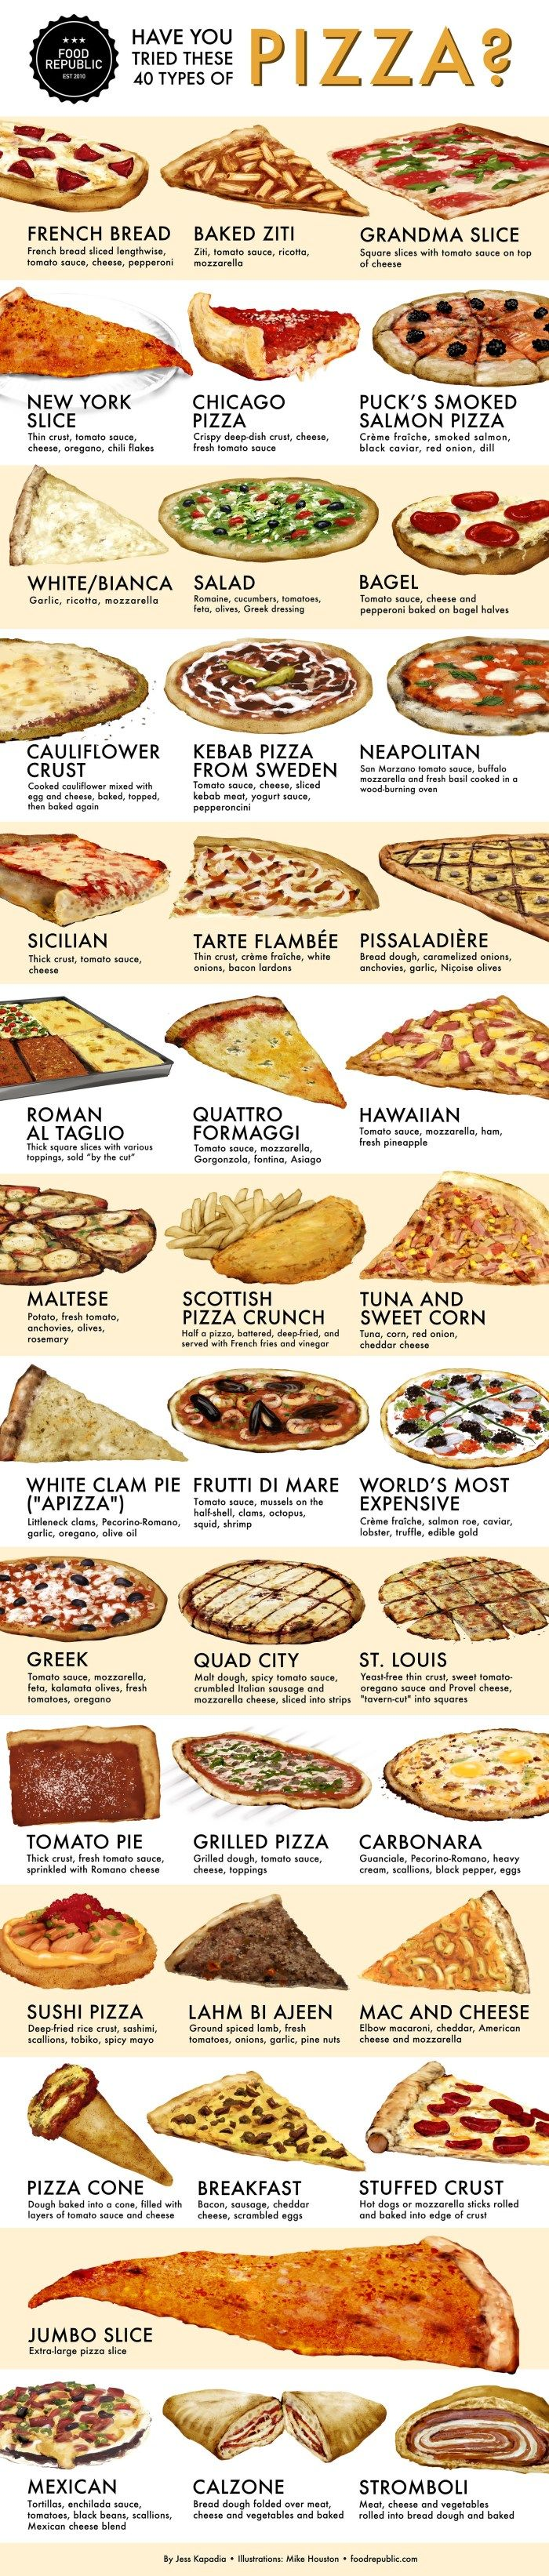 Chart Shows 40 Types of Pizzas–The Good, The Bad, and The Weird | Nerdist